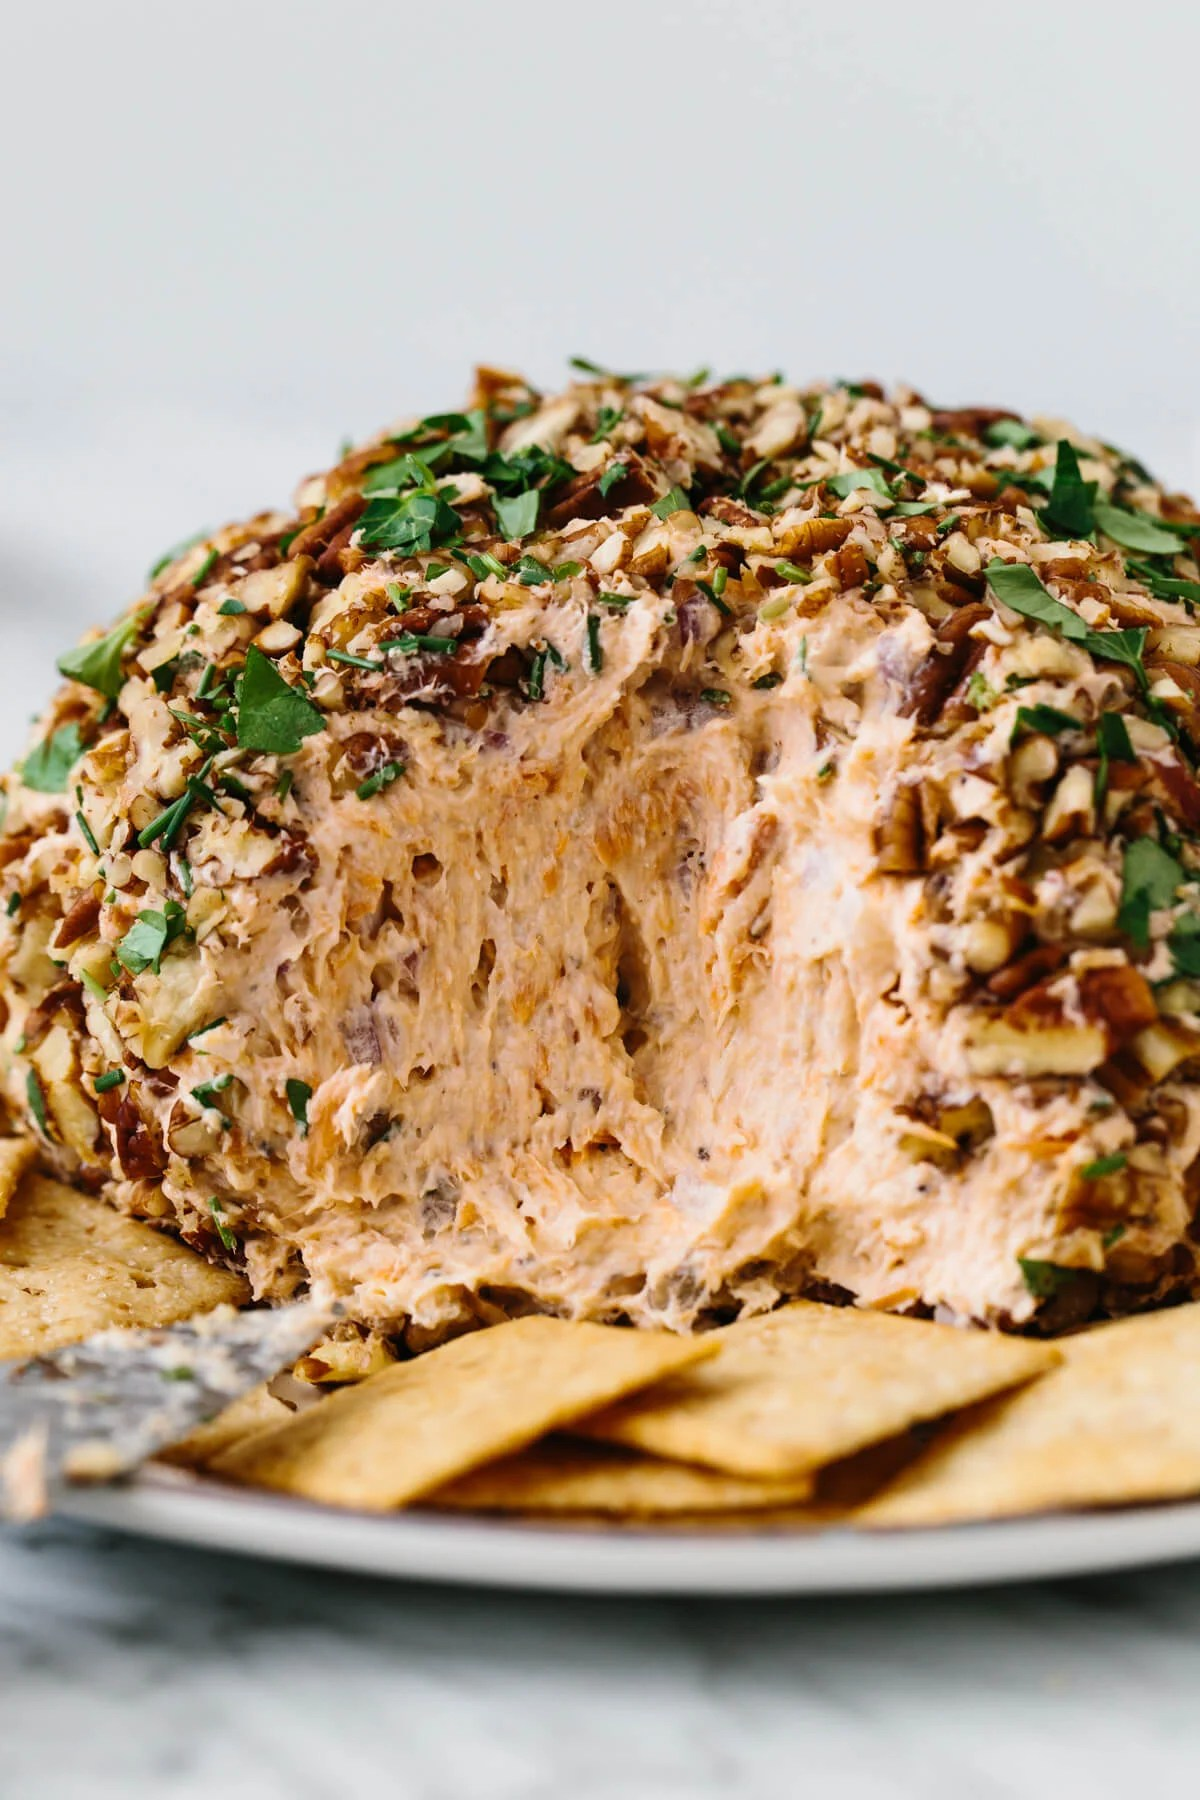 Smoked salmon cheese ball with crackers.